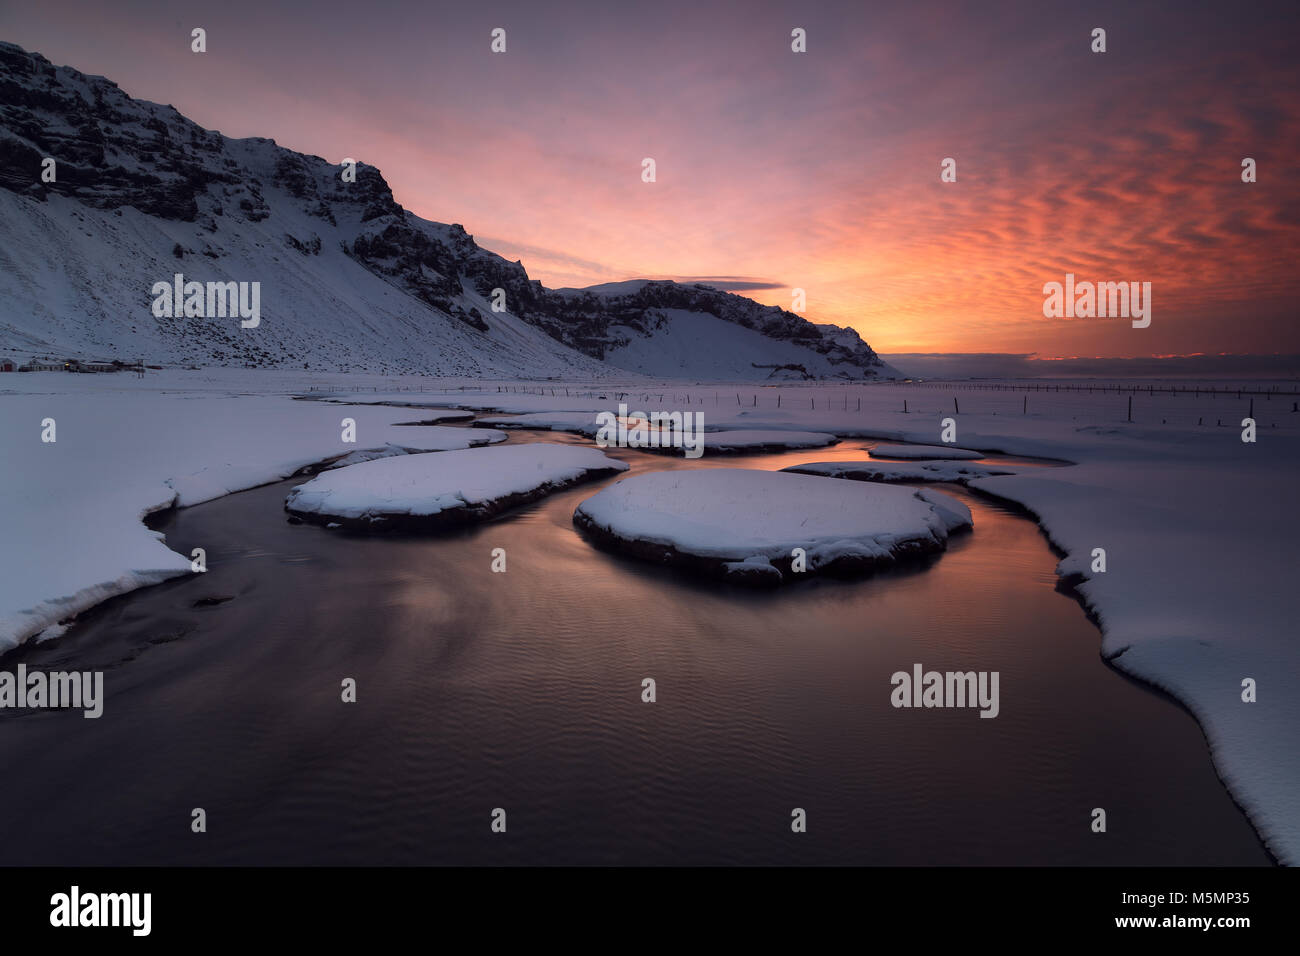 Sunrise over a snowed river in Iceland - Stock Image